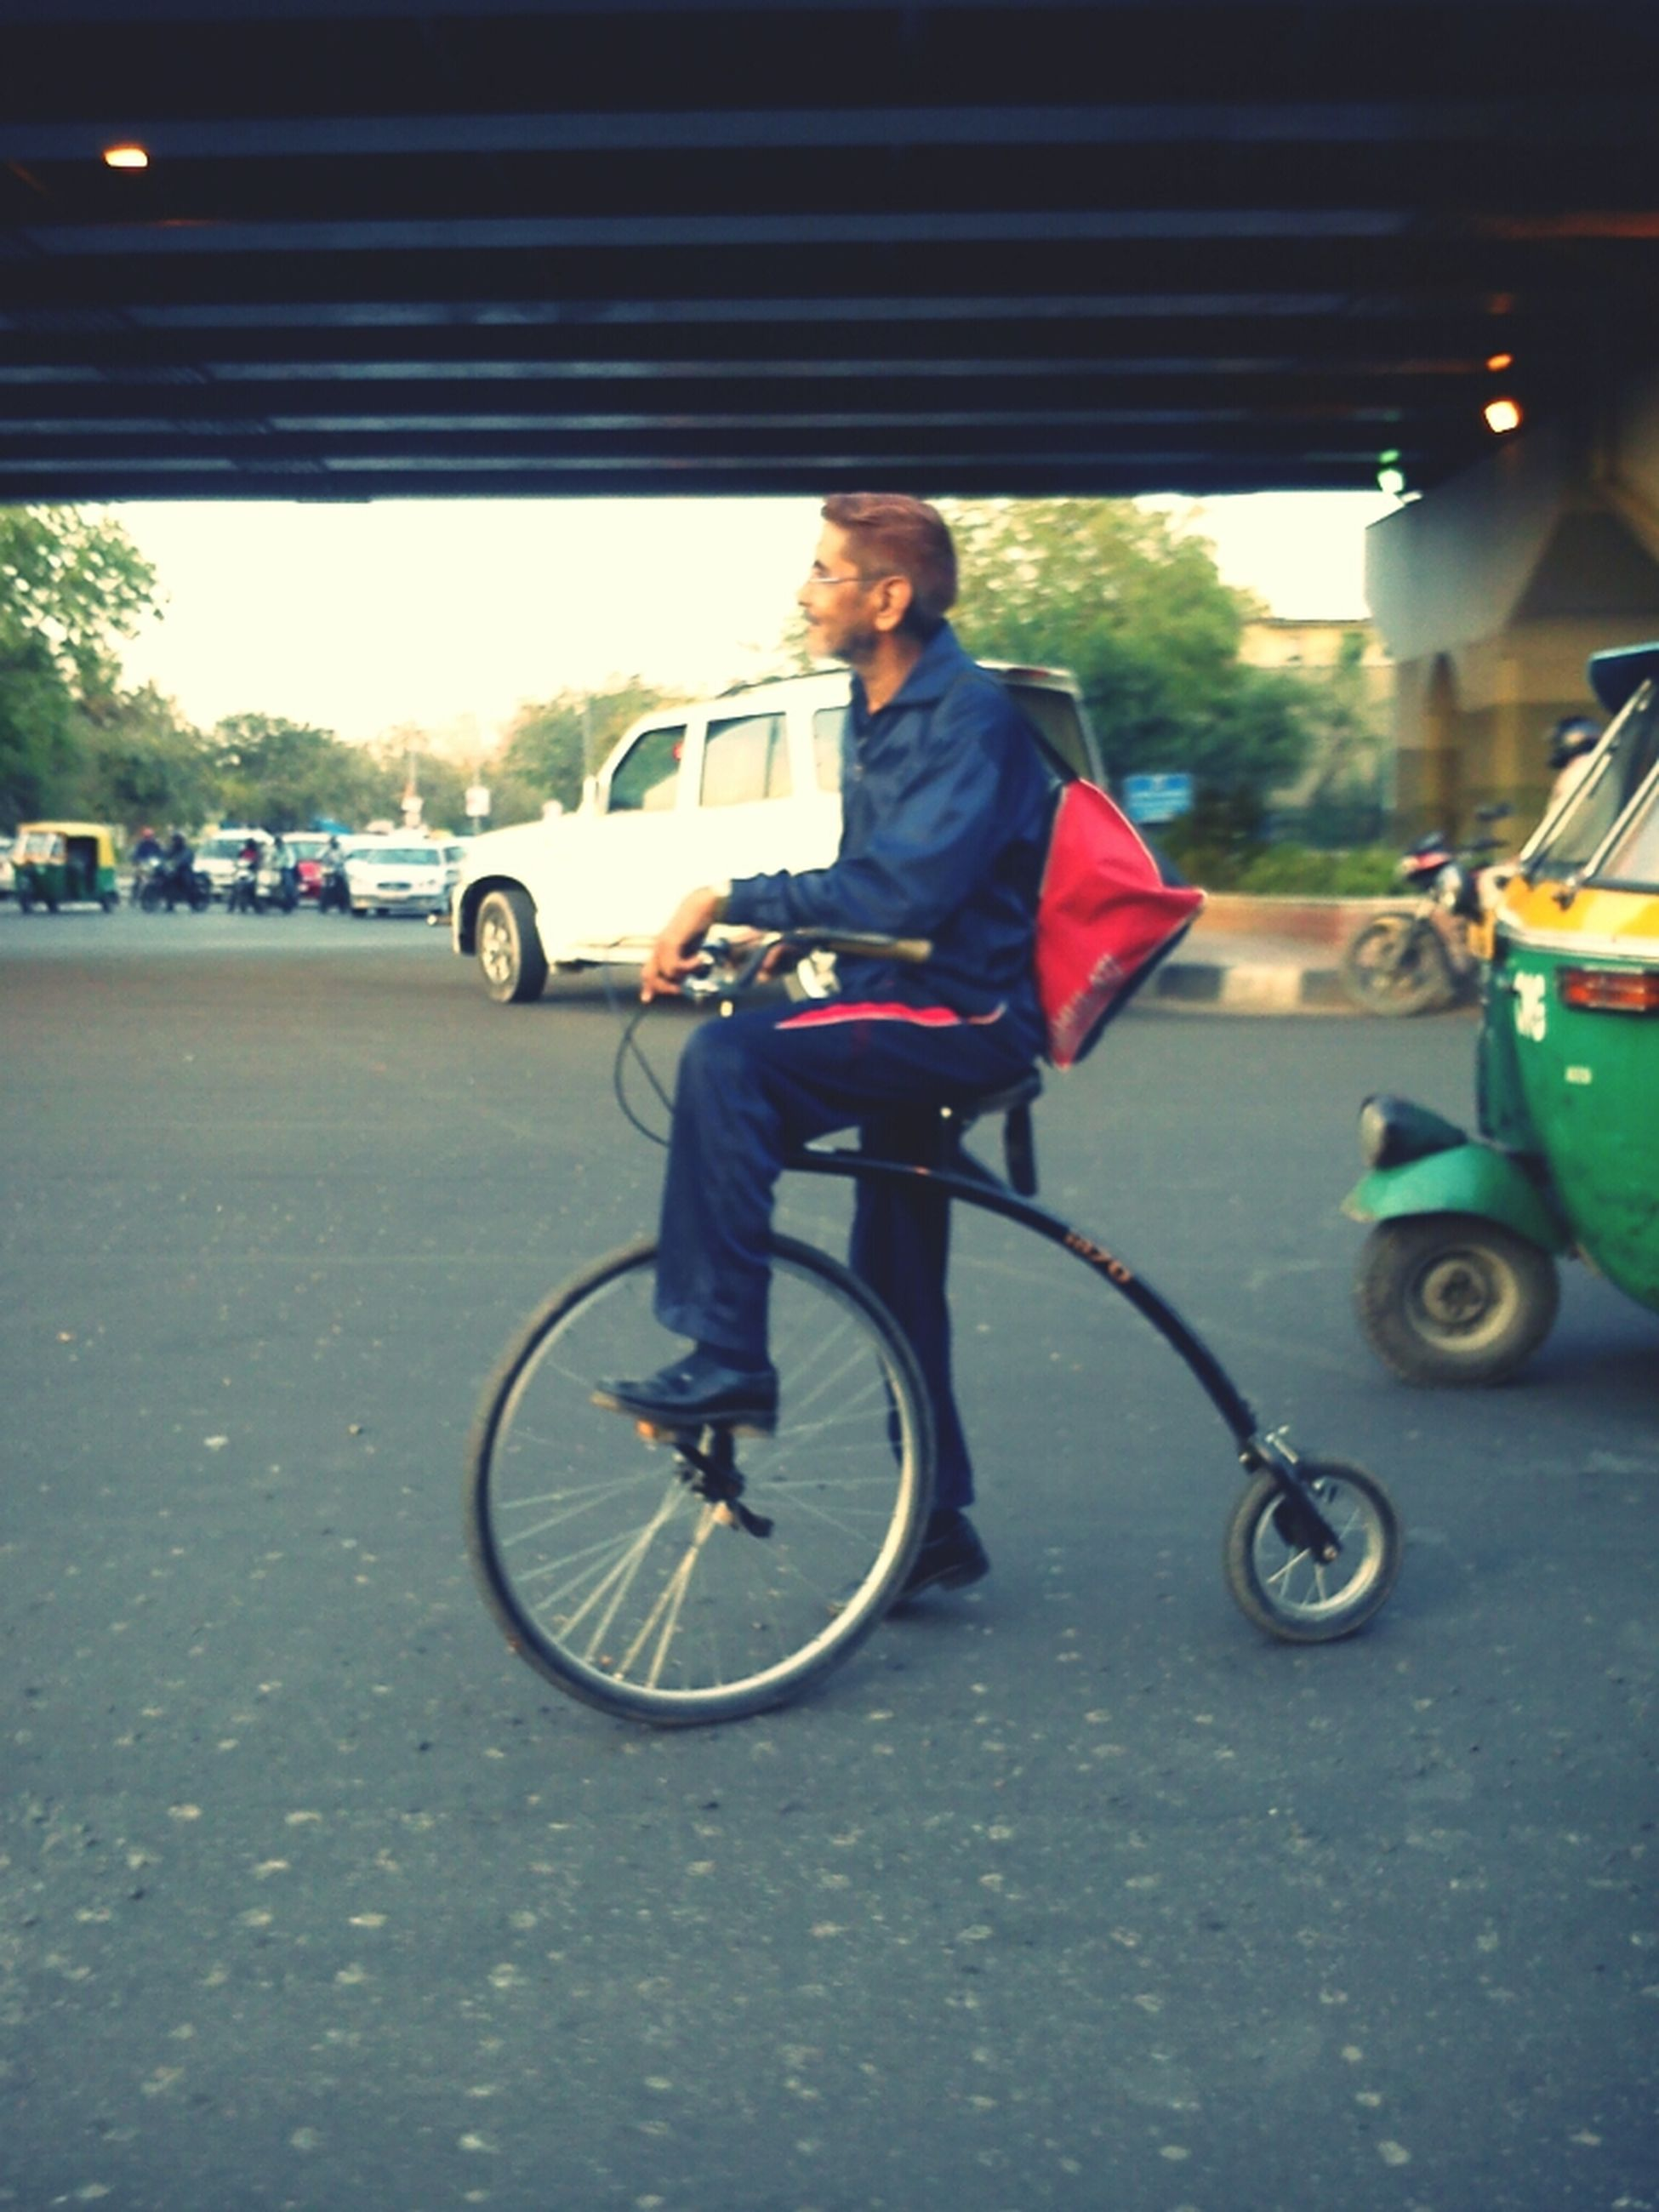 transportation, mode of transport, land vehicle, full length, lifestyles, car, leisure activity, casual clothing, bicycle, street, riding, road, travel, person, on the move, young adult, front view, motion